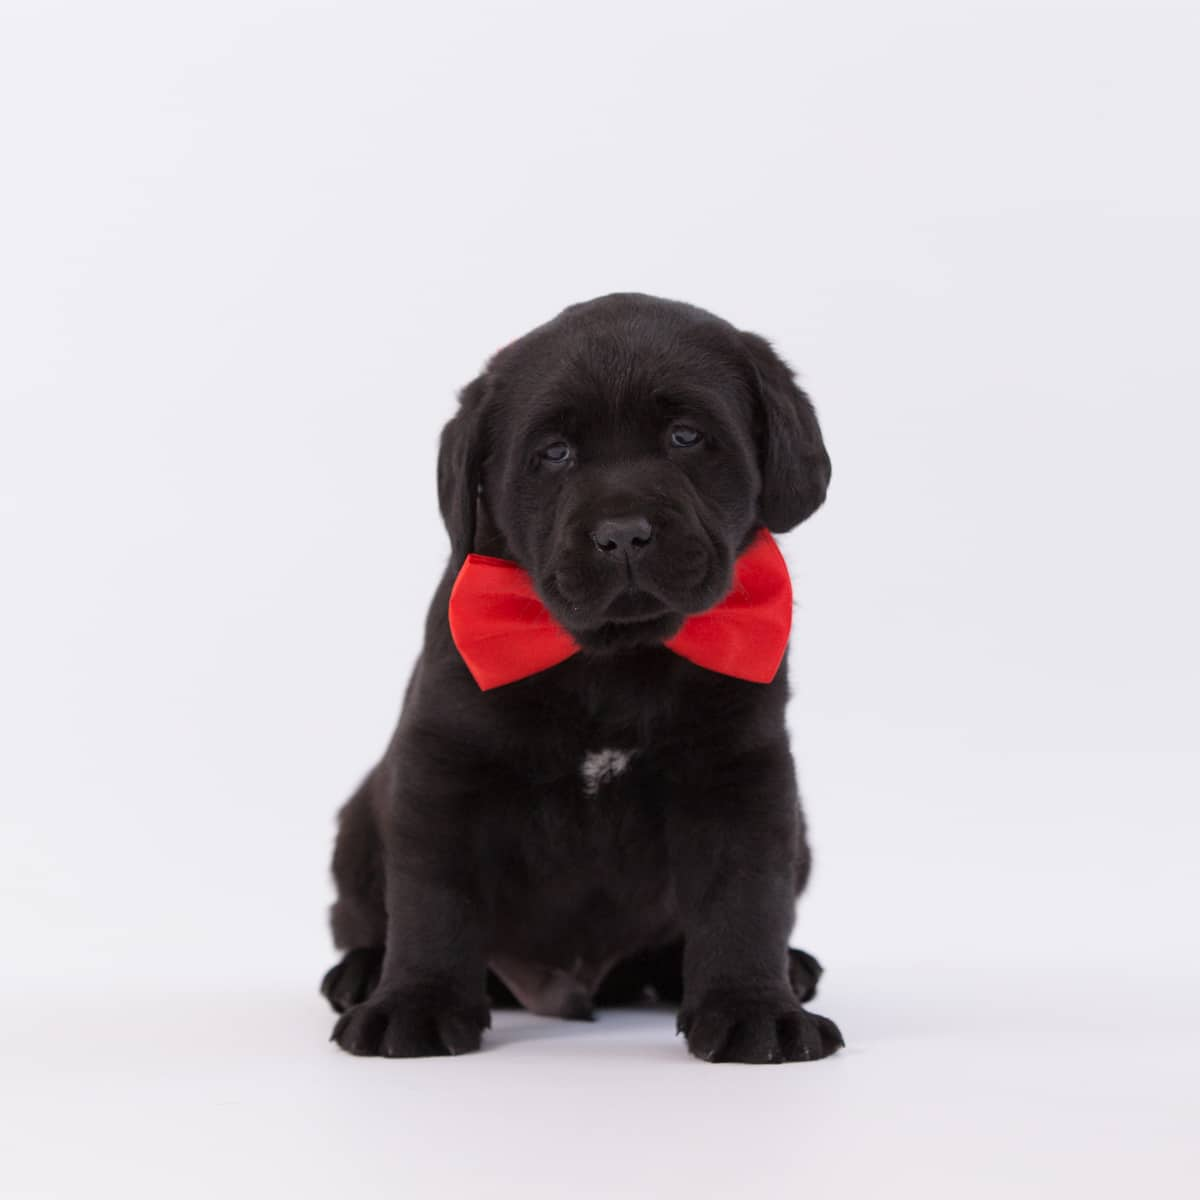 merelda samwell tarly with red bow tie, merelda labradors